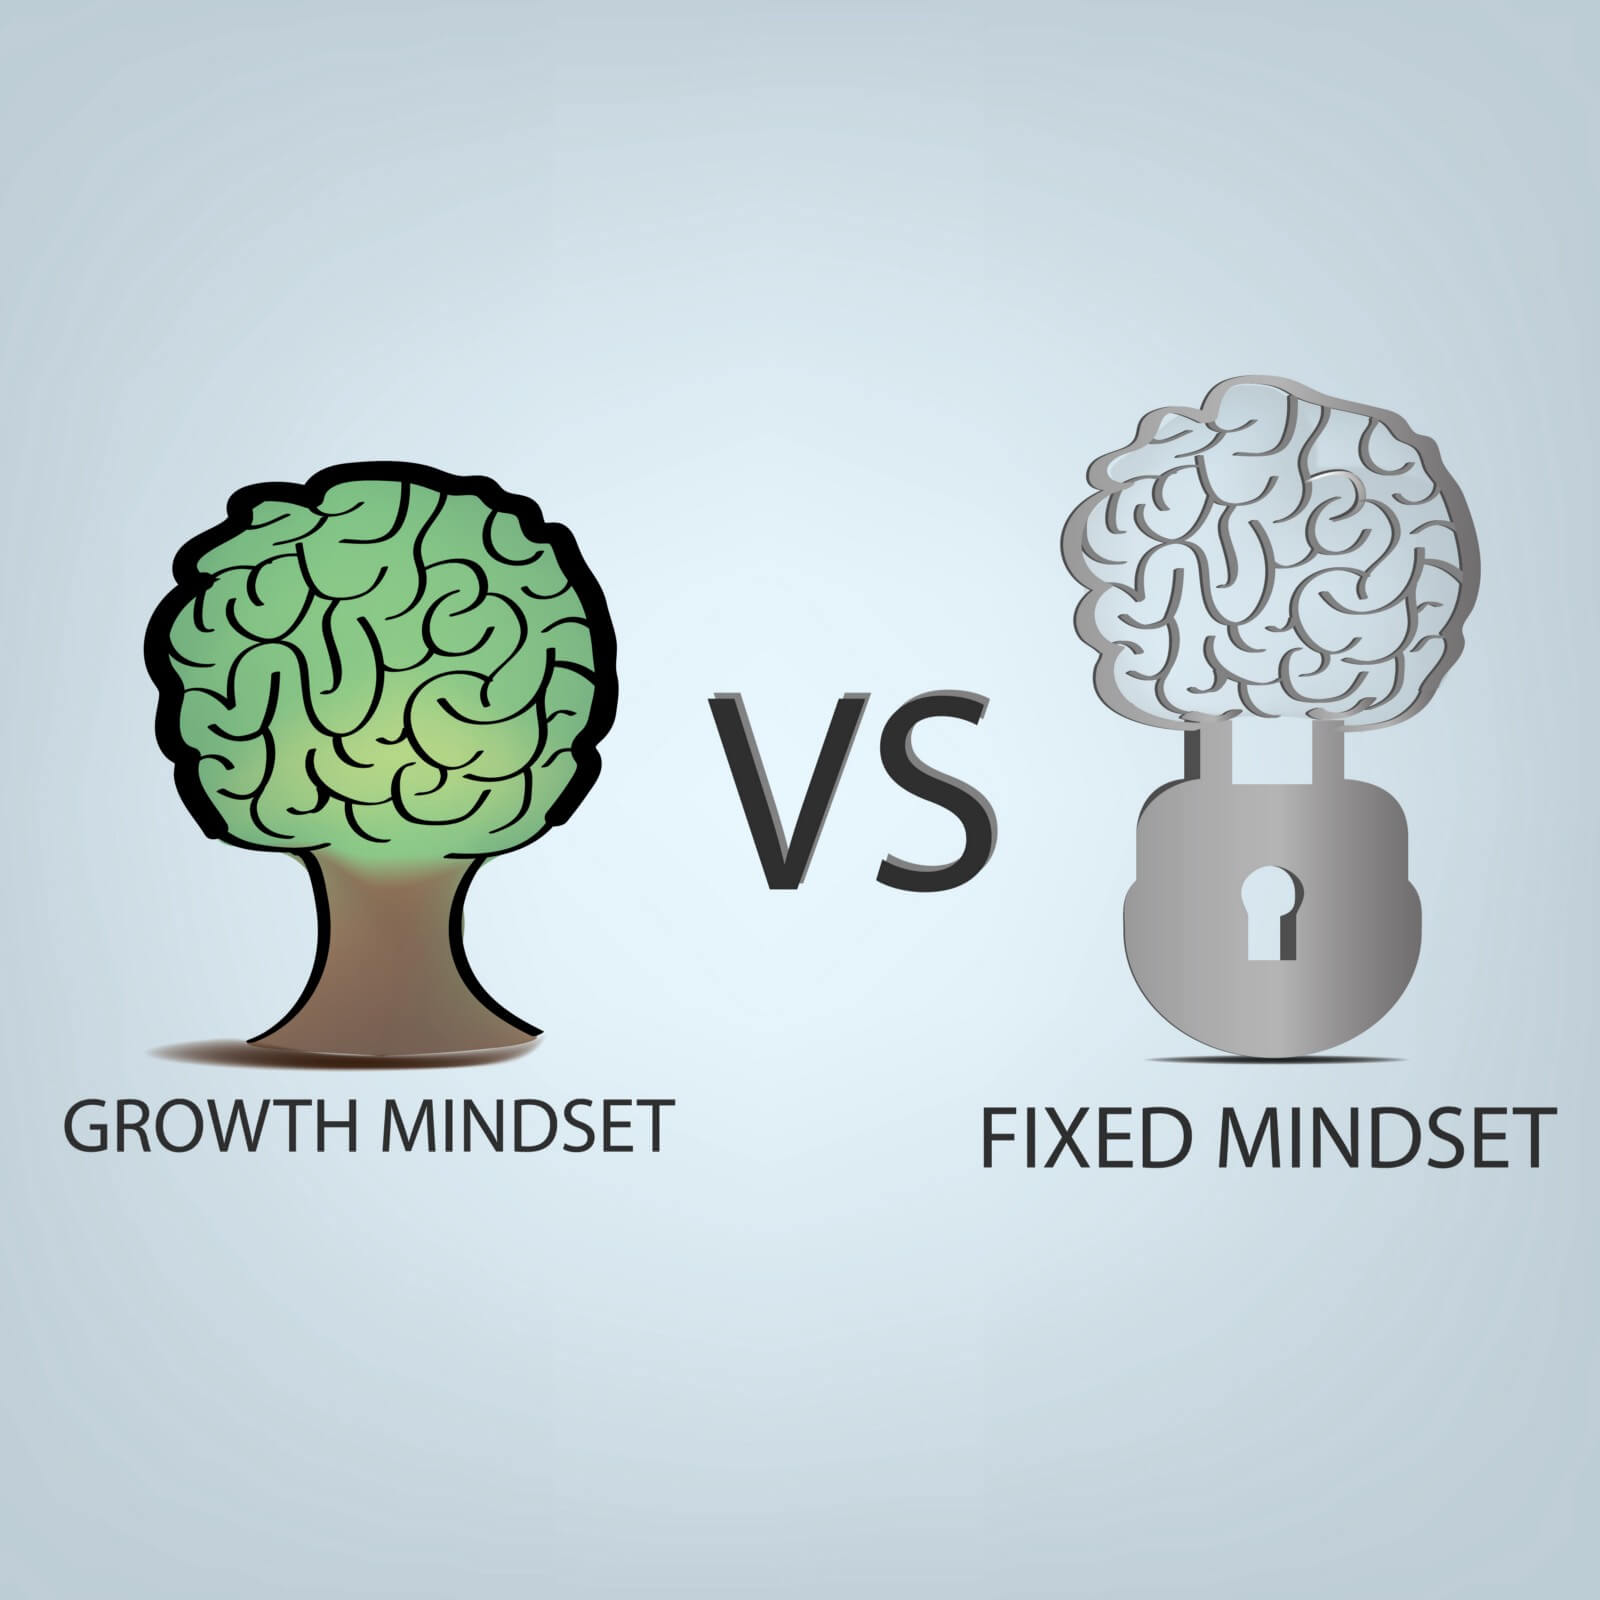 Images representing Growth Mindset (tree with leaves stylized as a brain that are green and healthy) and Fixed Mindset (trunk of tree has been replaced with a padlock and image is grey.